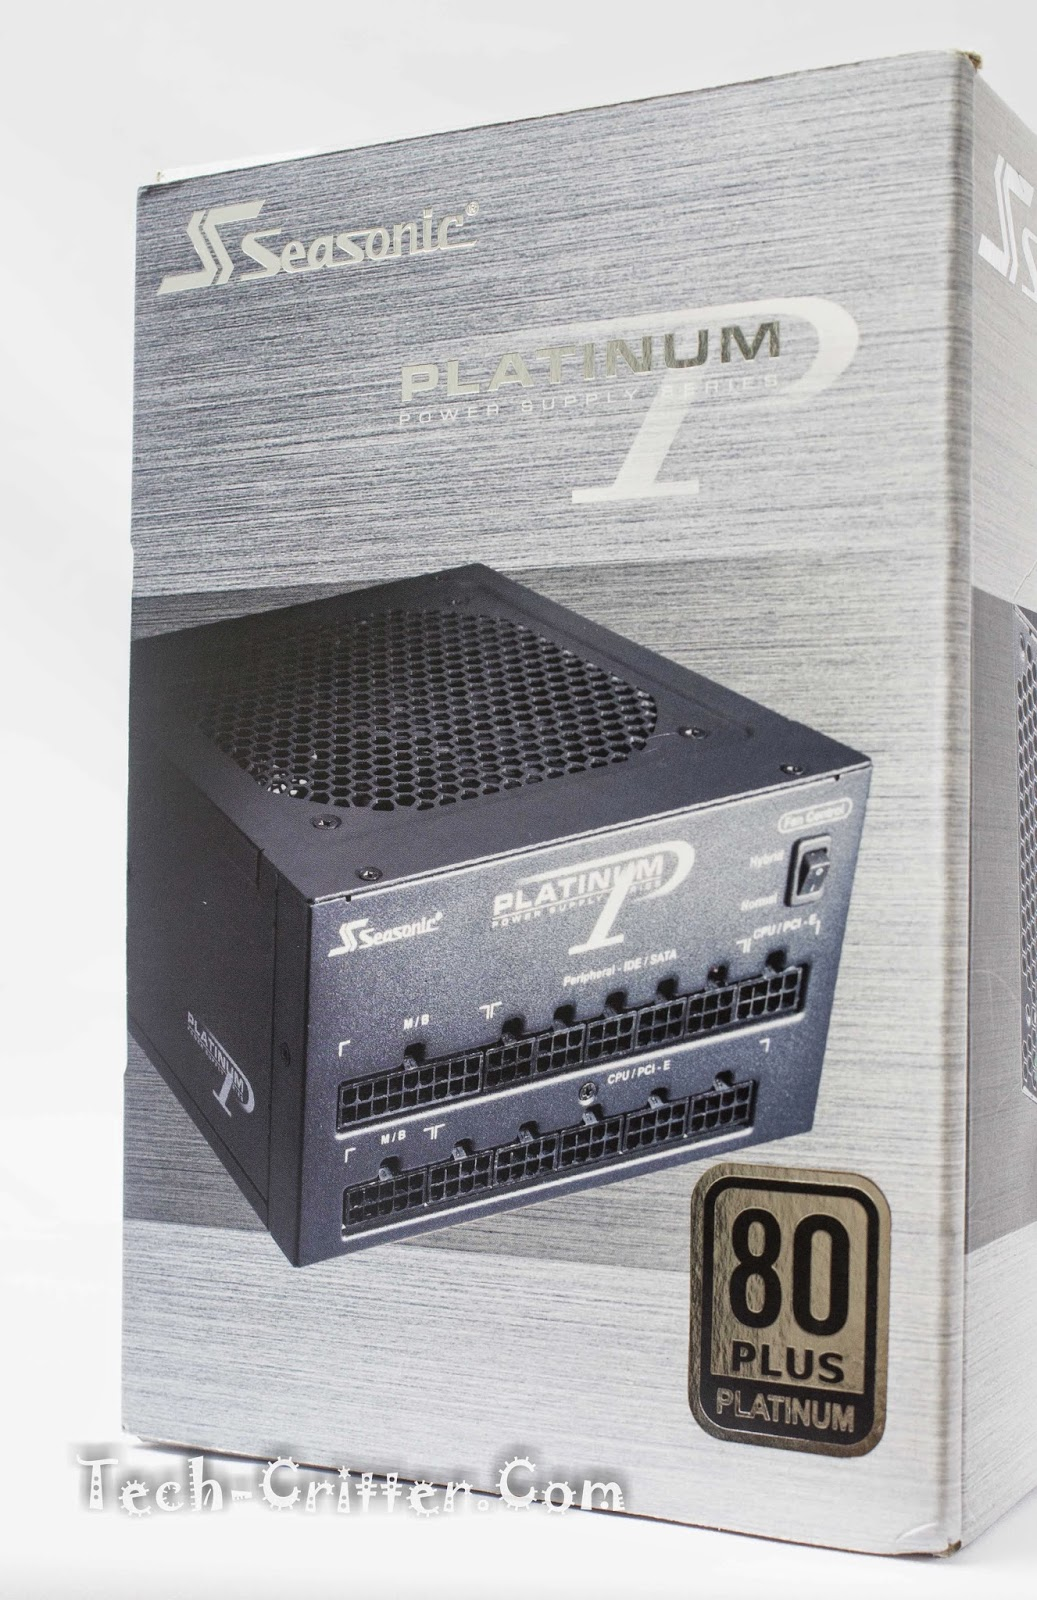 Unboxing & Overview: Seasonic Platinum Series 860W Power Supply Unit 50